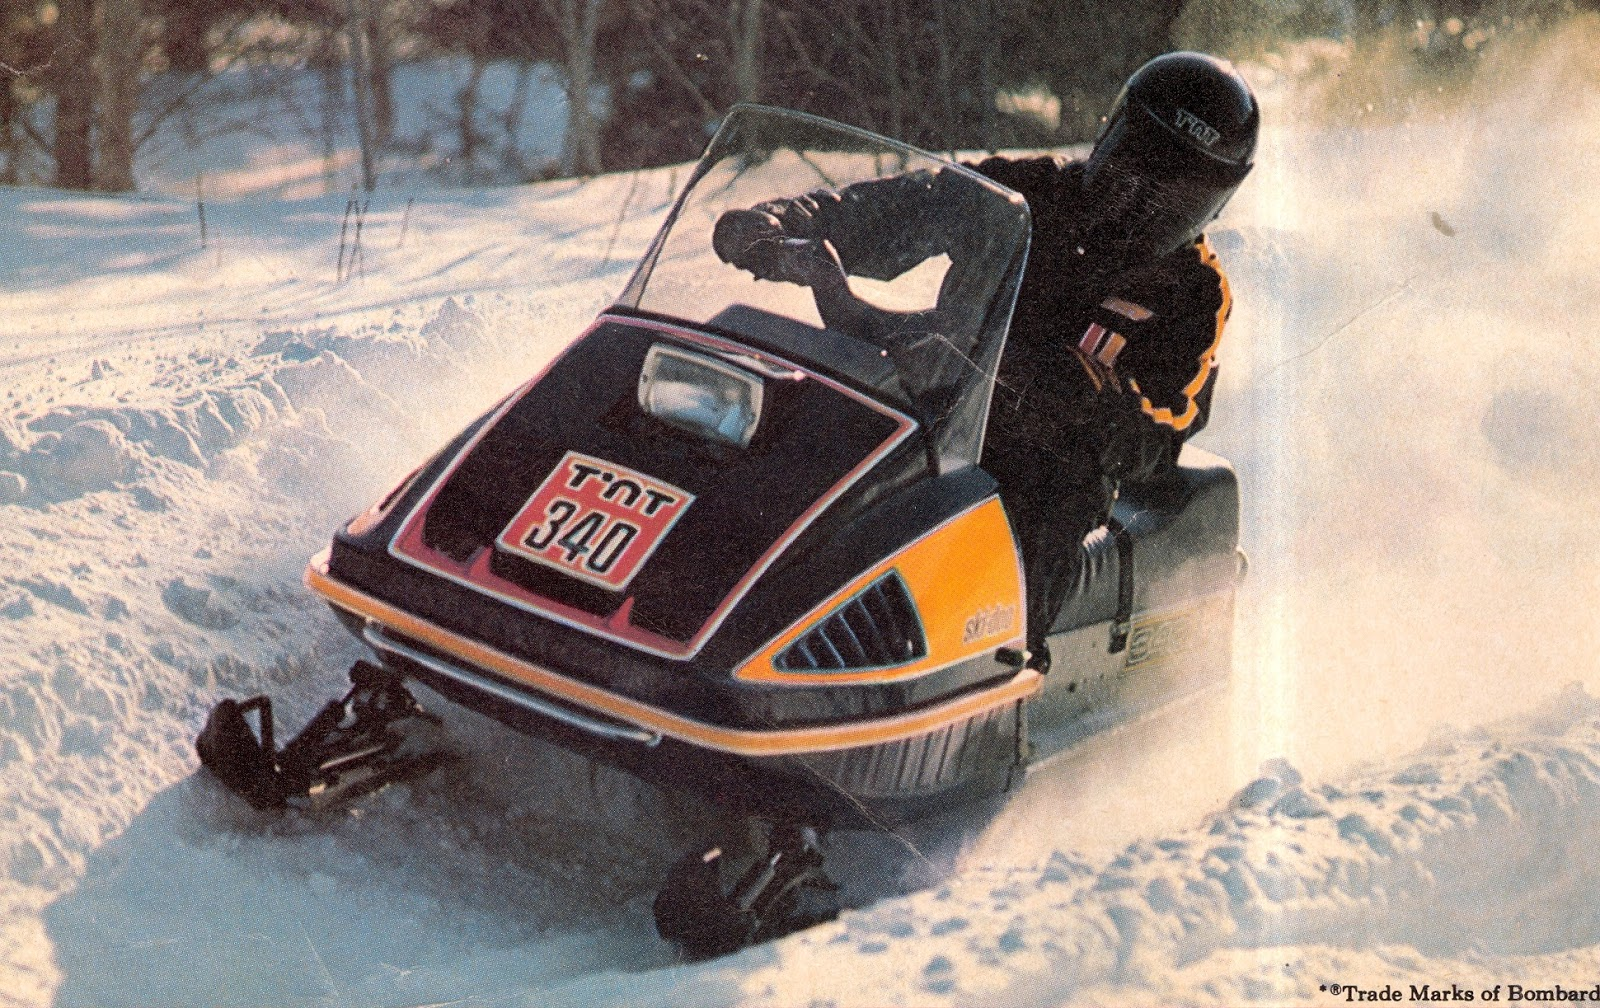 CLASSIC SNOWMOBILES OF THE PAST: 1976 SKI-DOO 340 T'NT